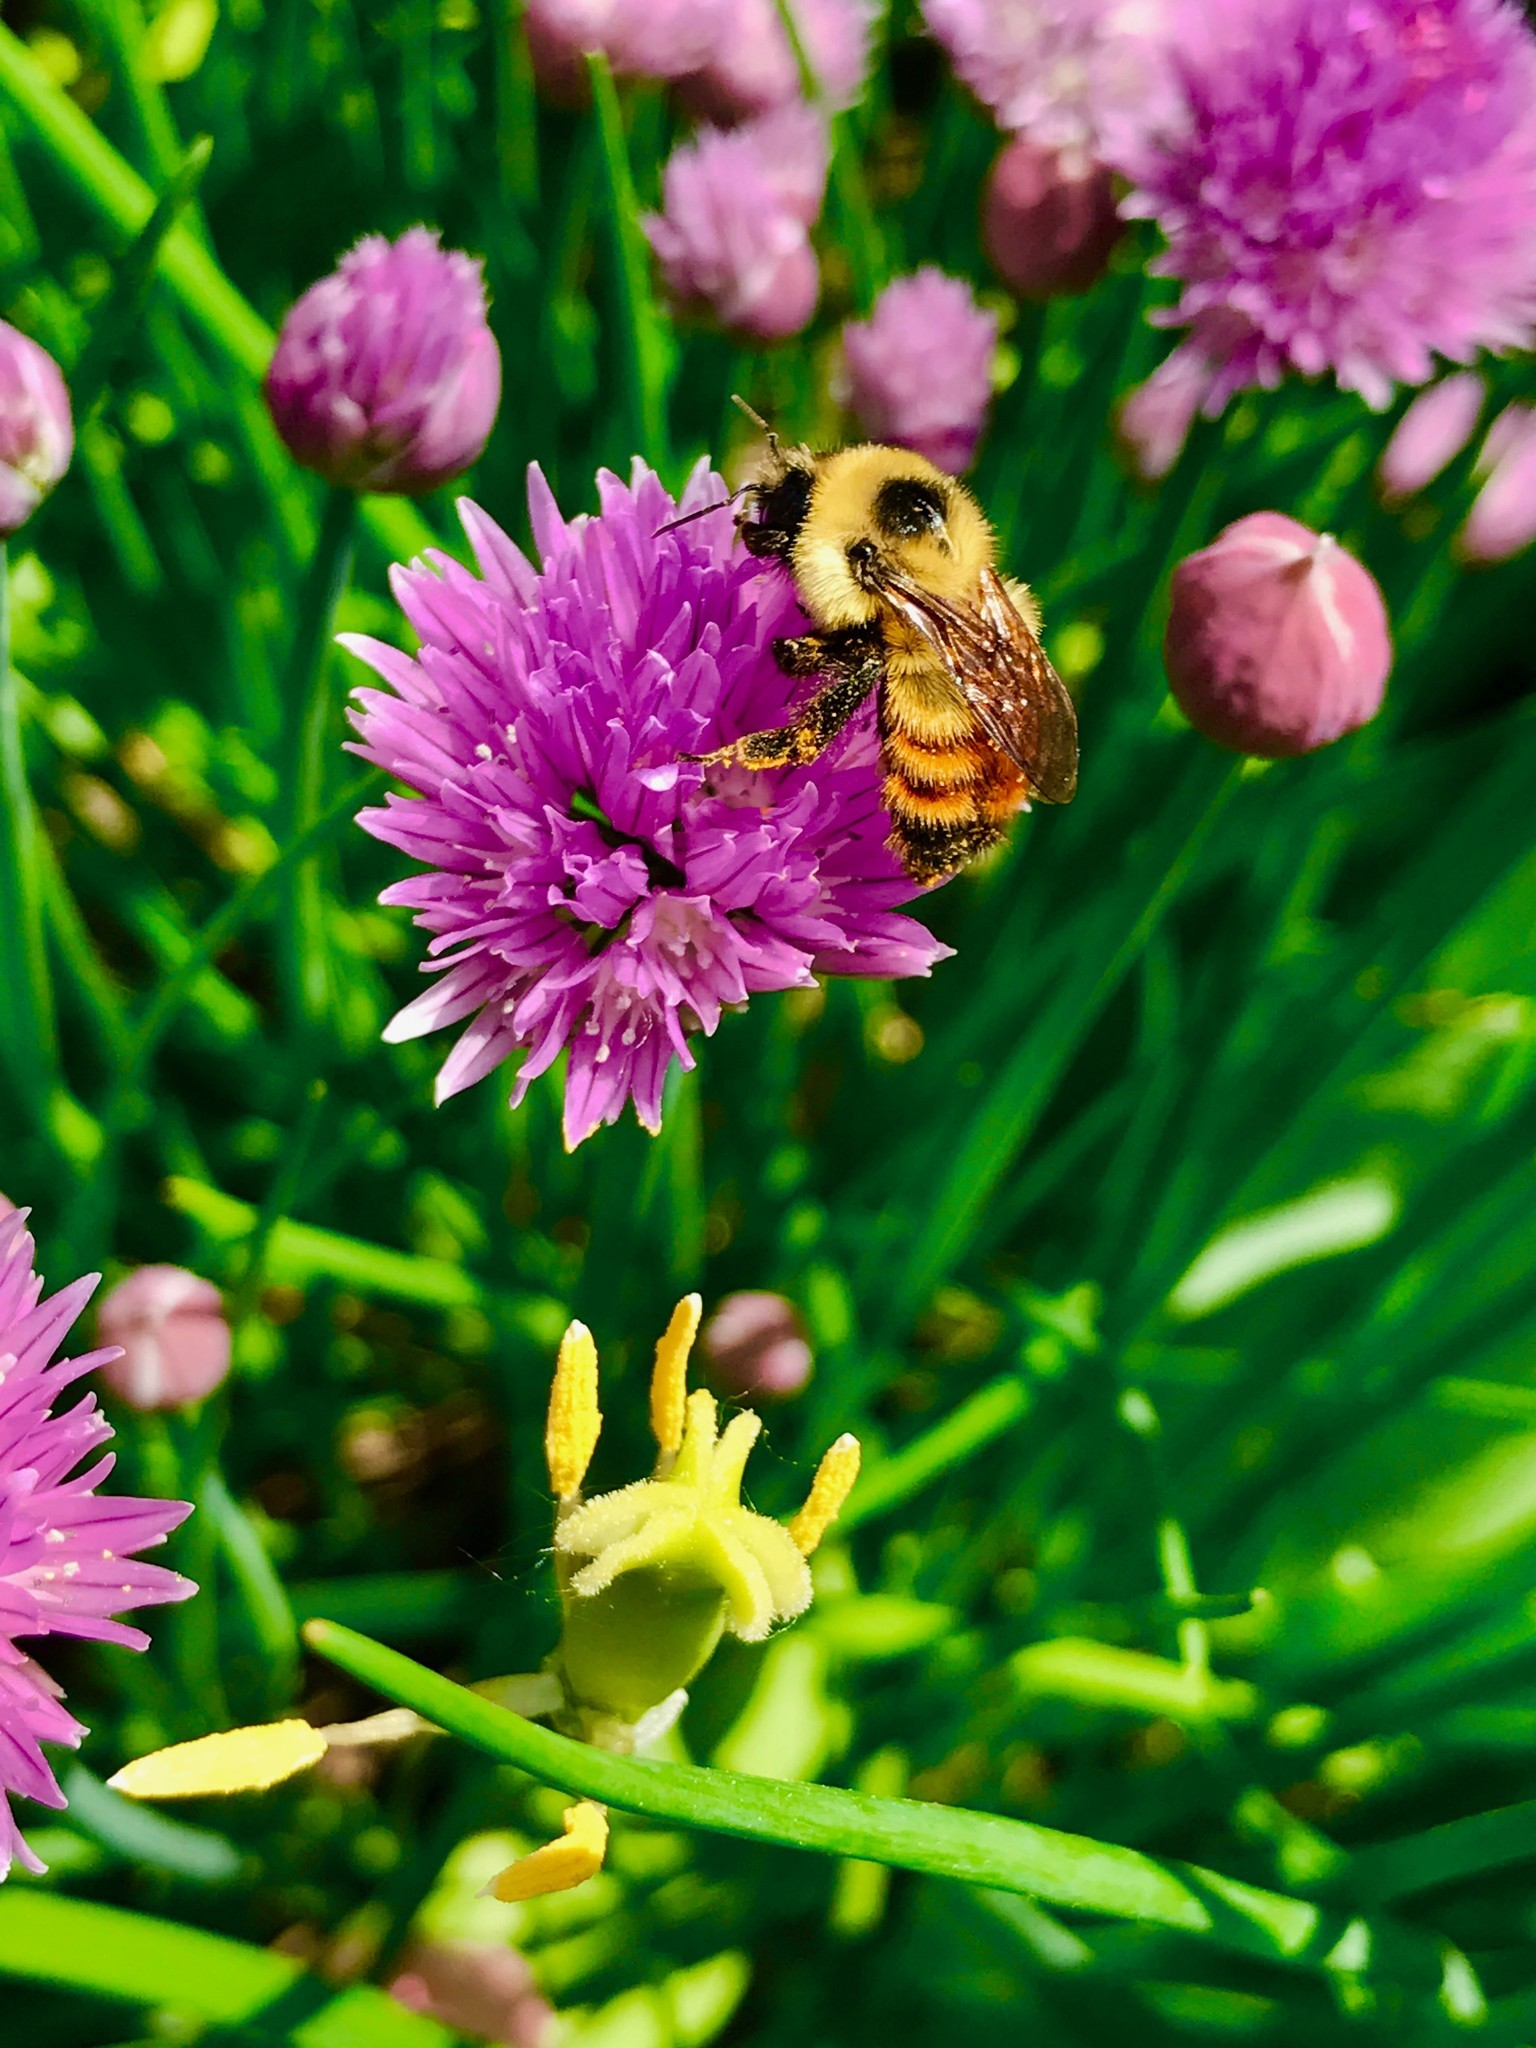 A red-belted bumblebee covered in pollen visits a chive flower in Canada.